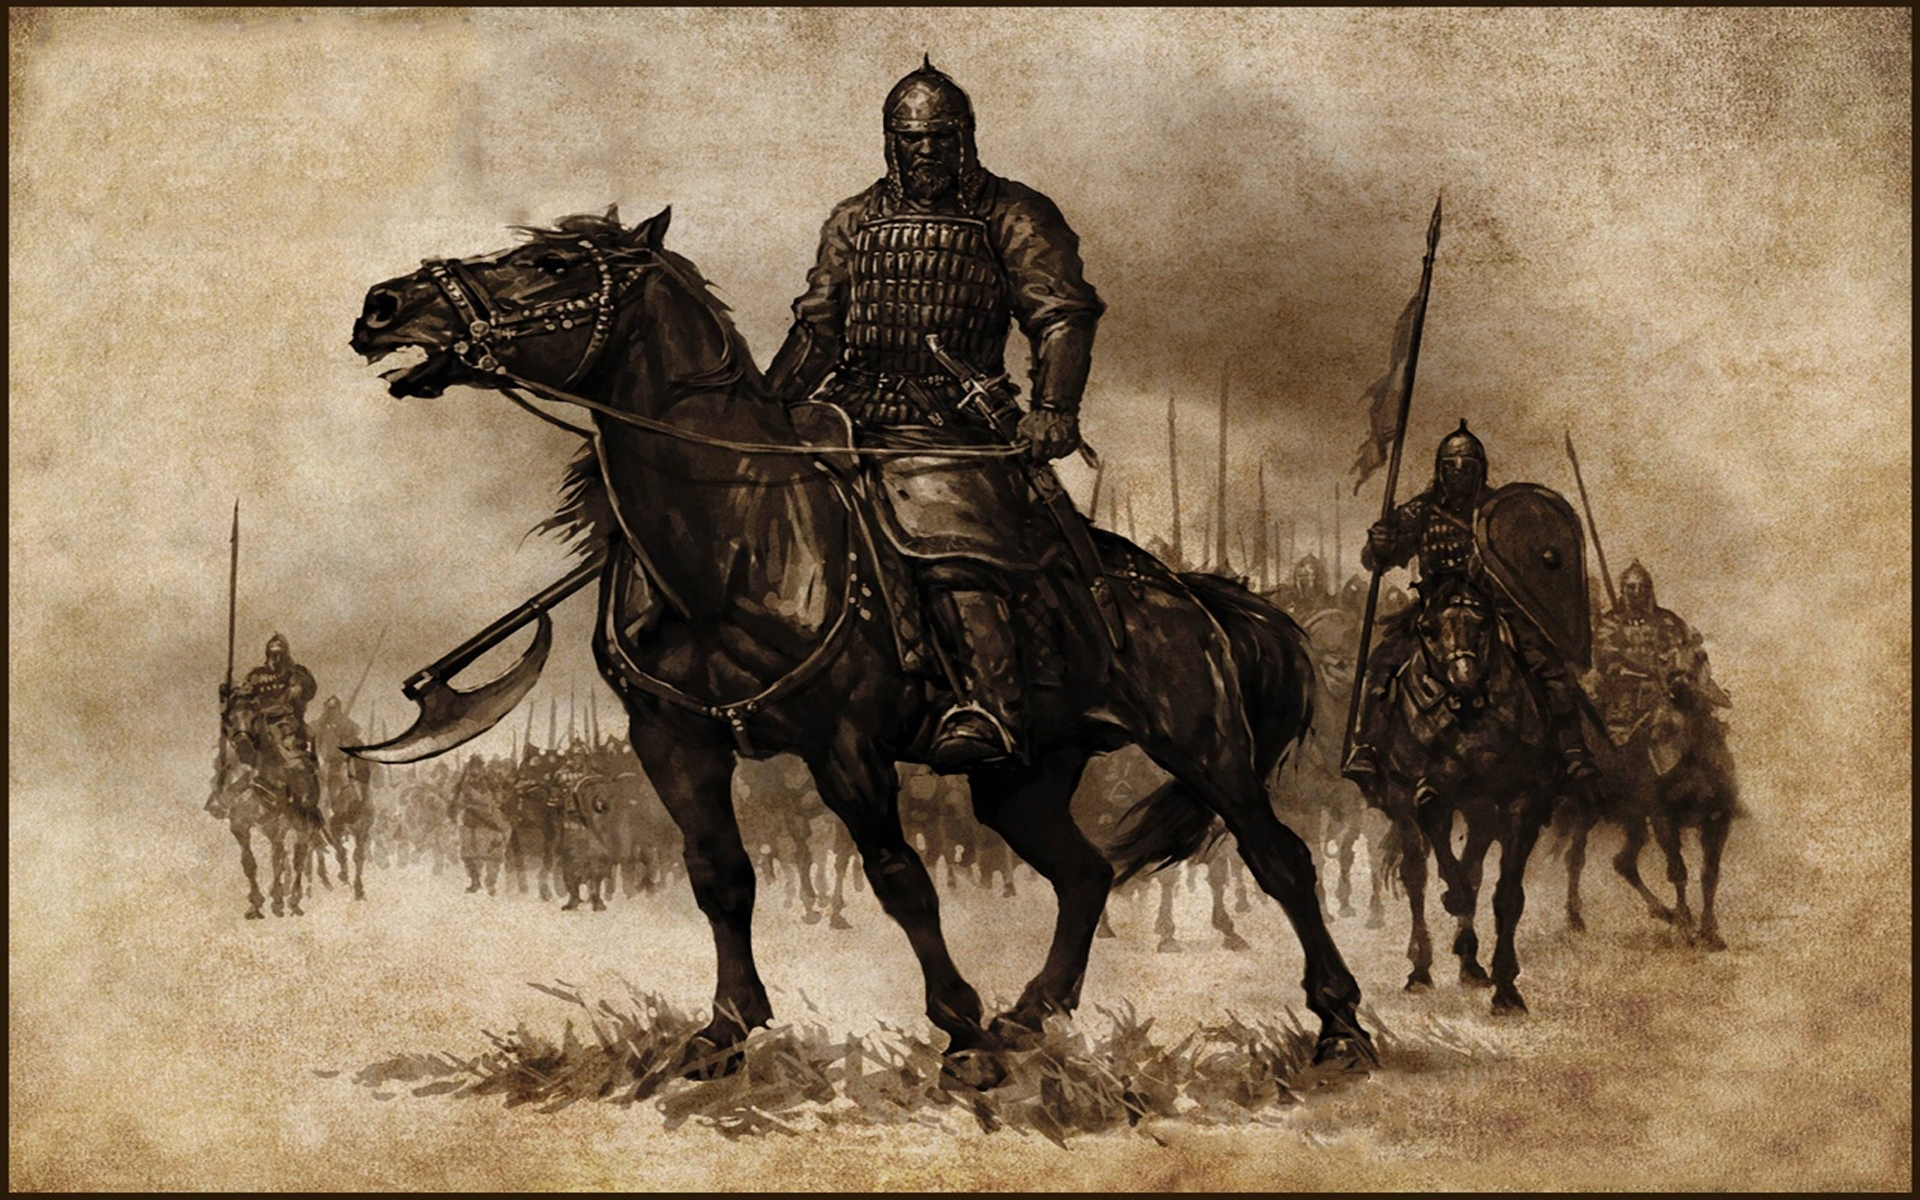 Mount & Blade: Warband HD Wallpaper | Background Image | 1920x1200 |  ID:376911 - Wallpaper Abyss